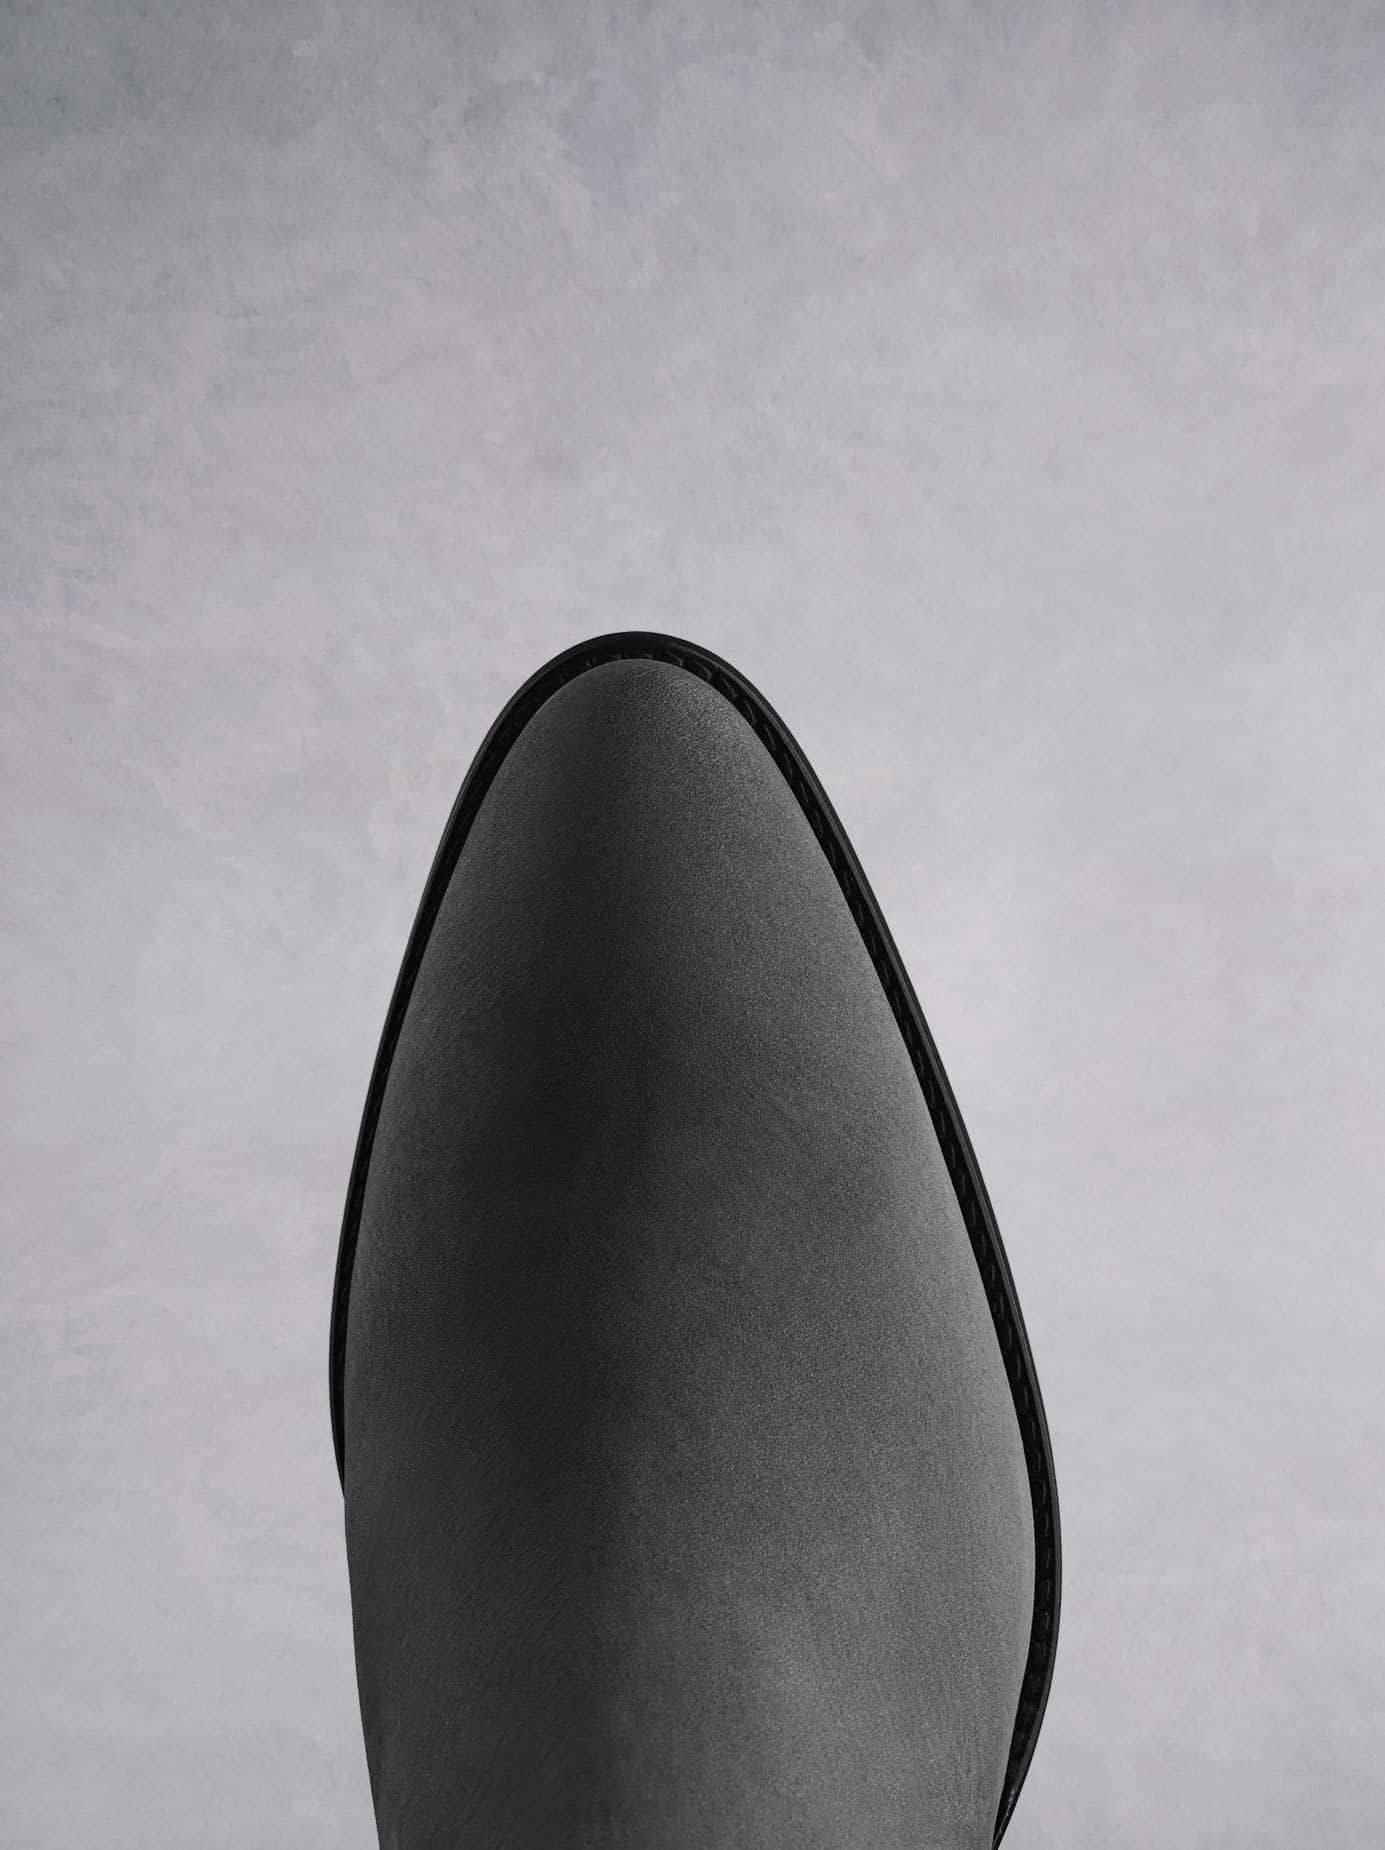 Buckland features a stylish pointed grey toe shape inspired by the Western trend.